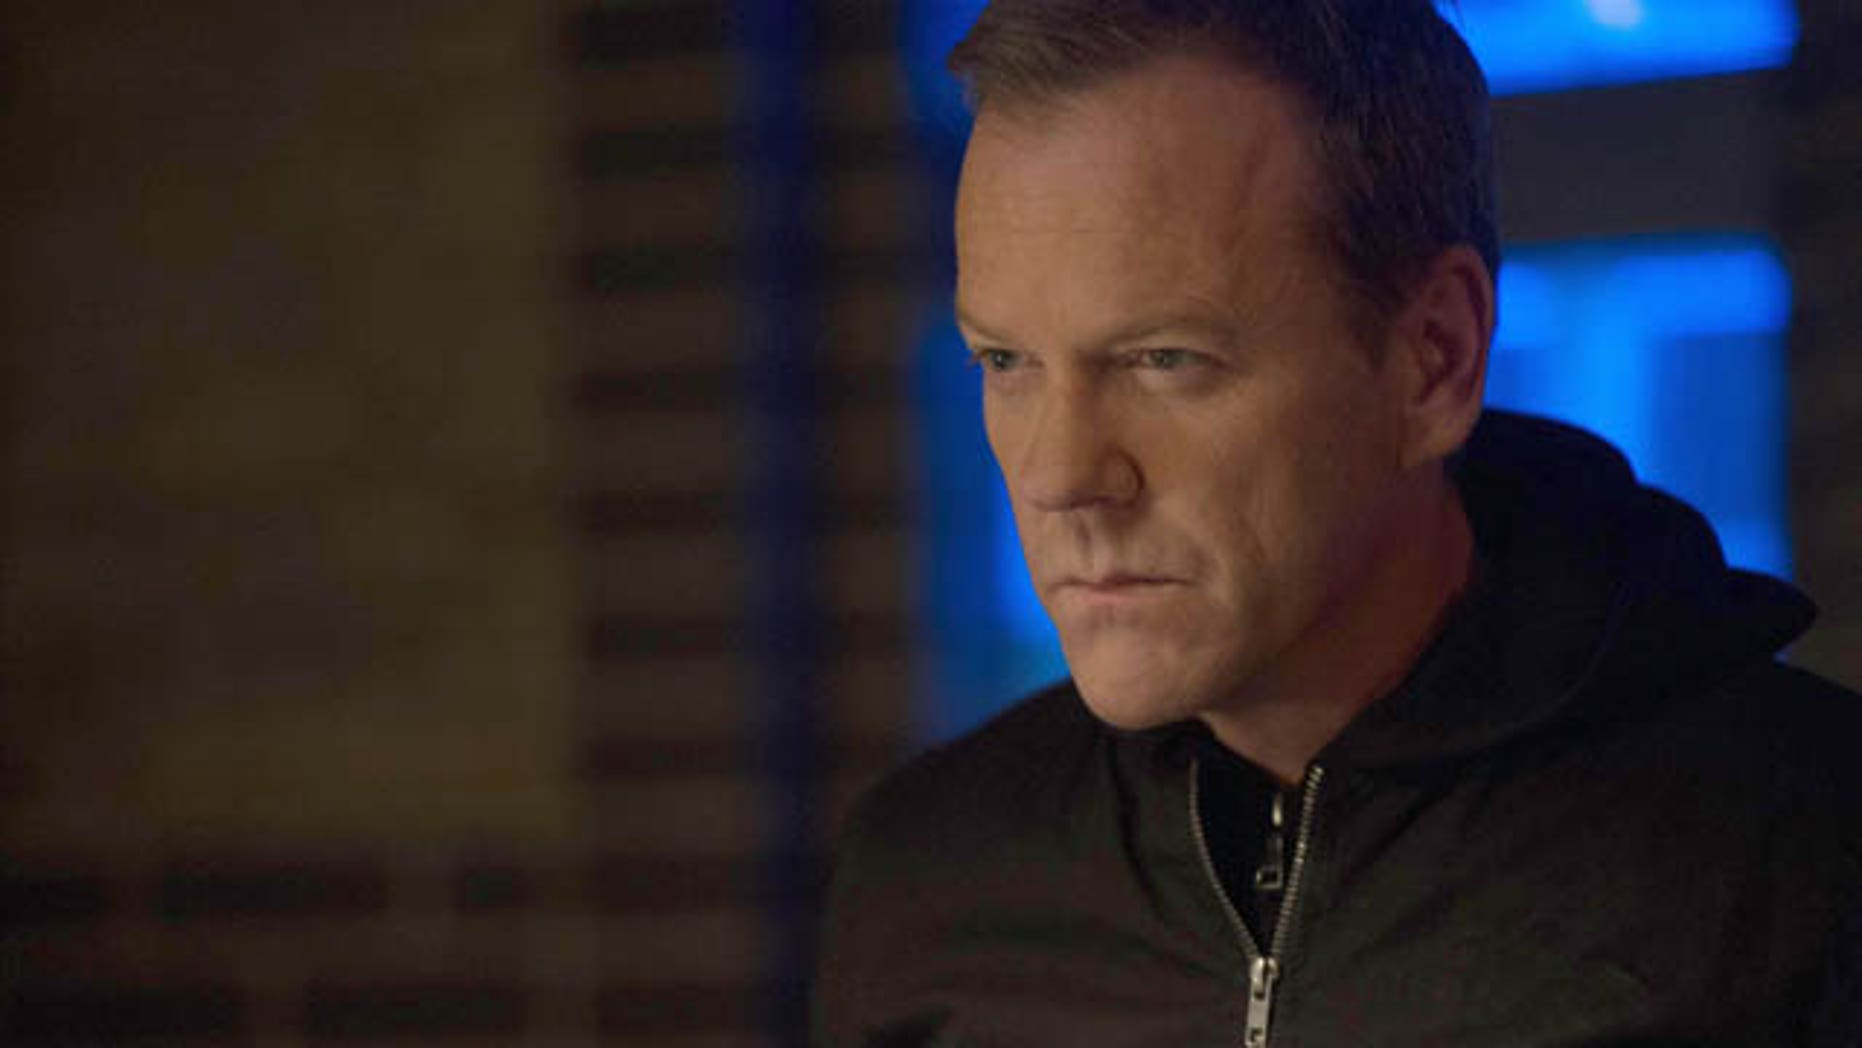 Kiefer Sutherland as Jack Bauer on '24,' which marked its 200th episode Monday. (Courtesy Fox Broadcasting)